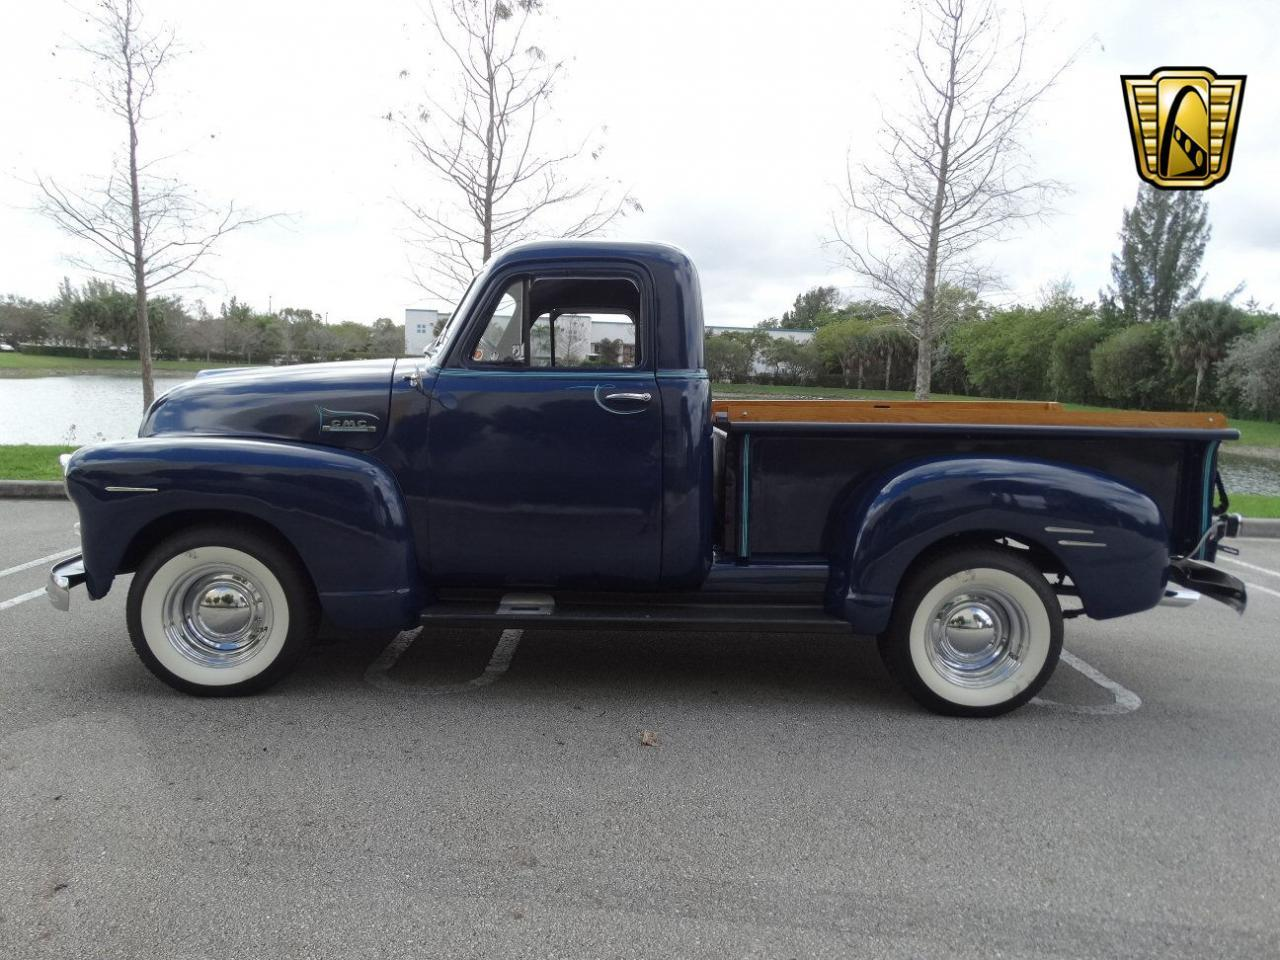 Large Picture of 1952 GMC Pickup - $30,595.00 Offered by Gateway Classic Cars - Fort Lauderdale - KNJB